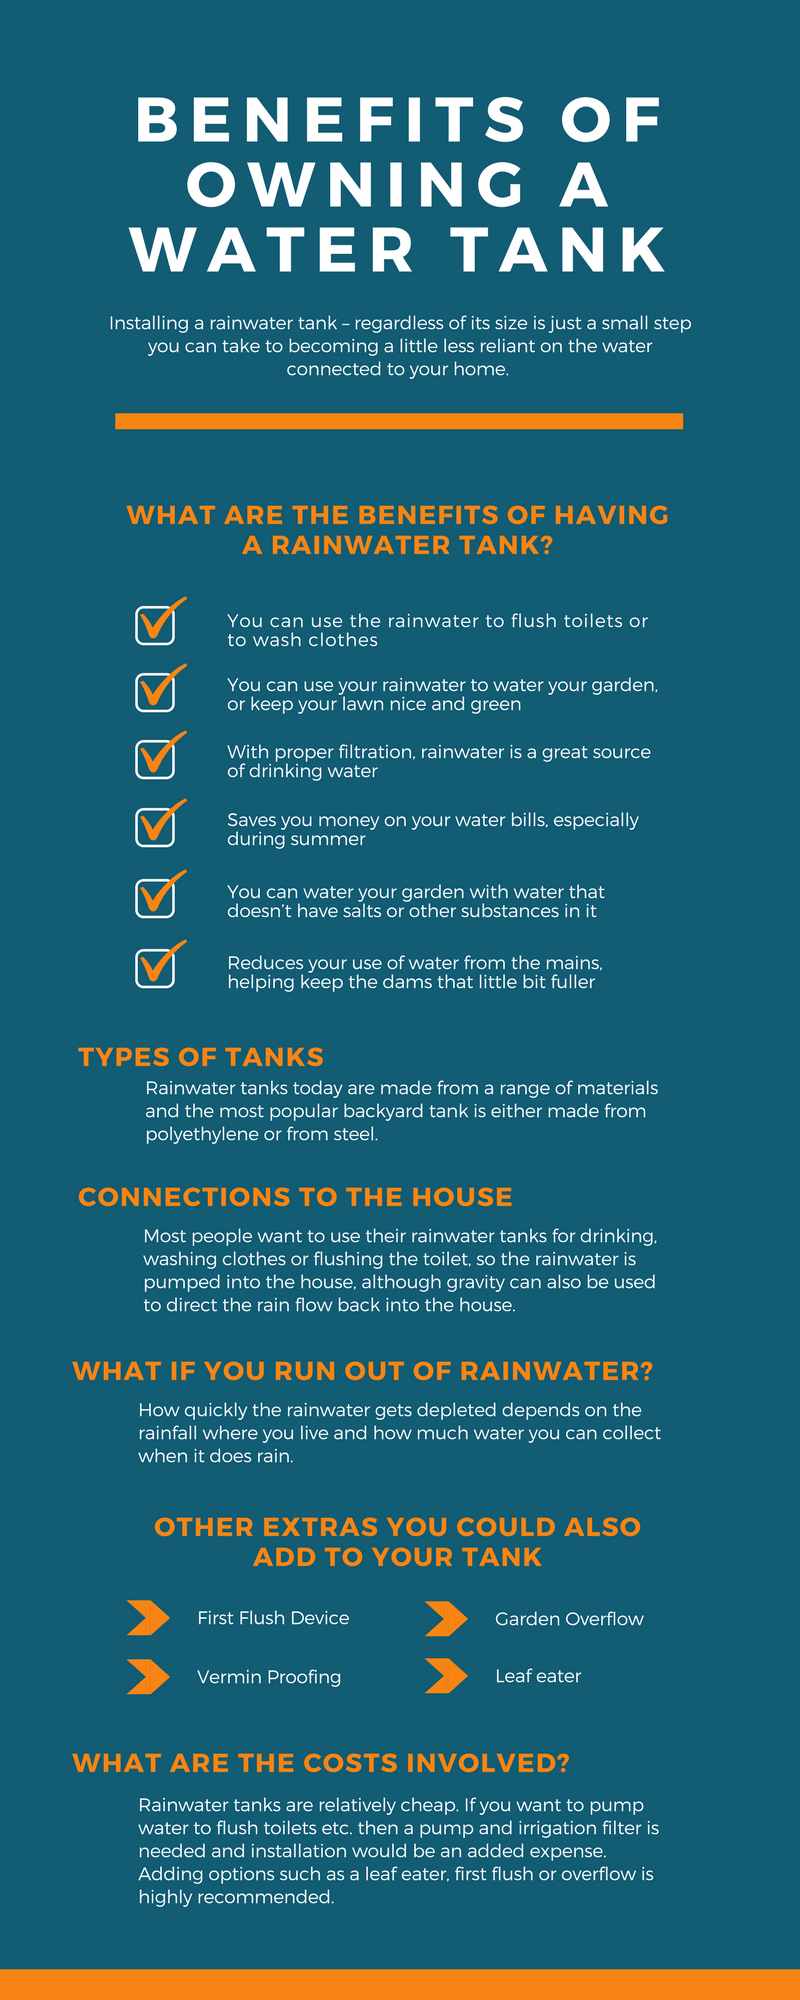 Benefits of Owning A Rainwater Tank